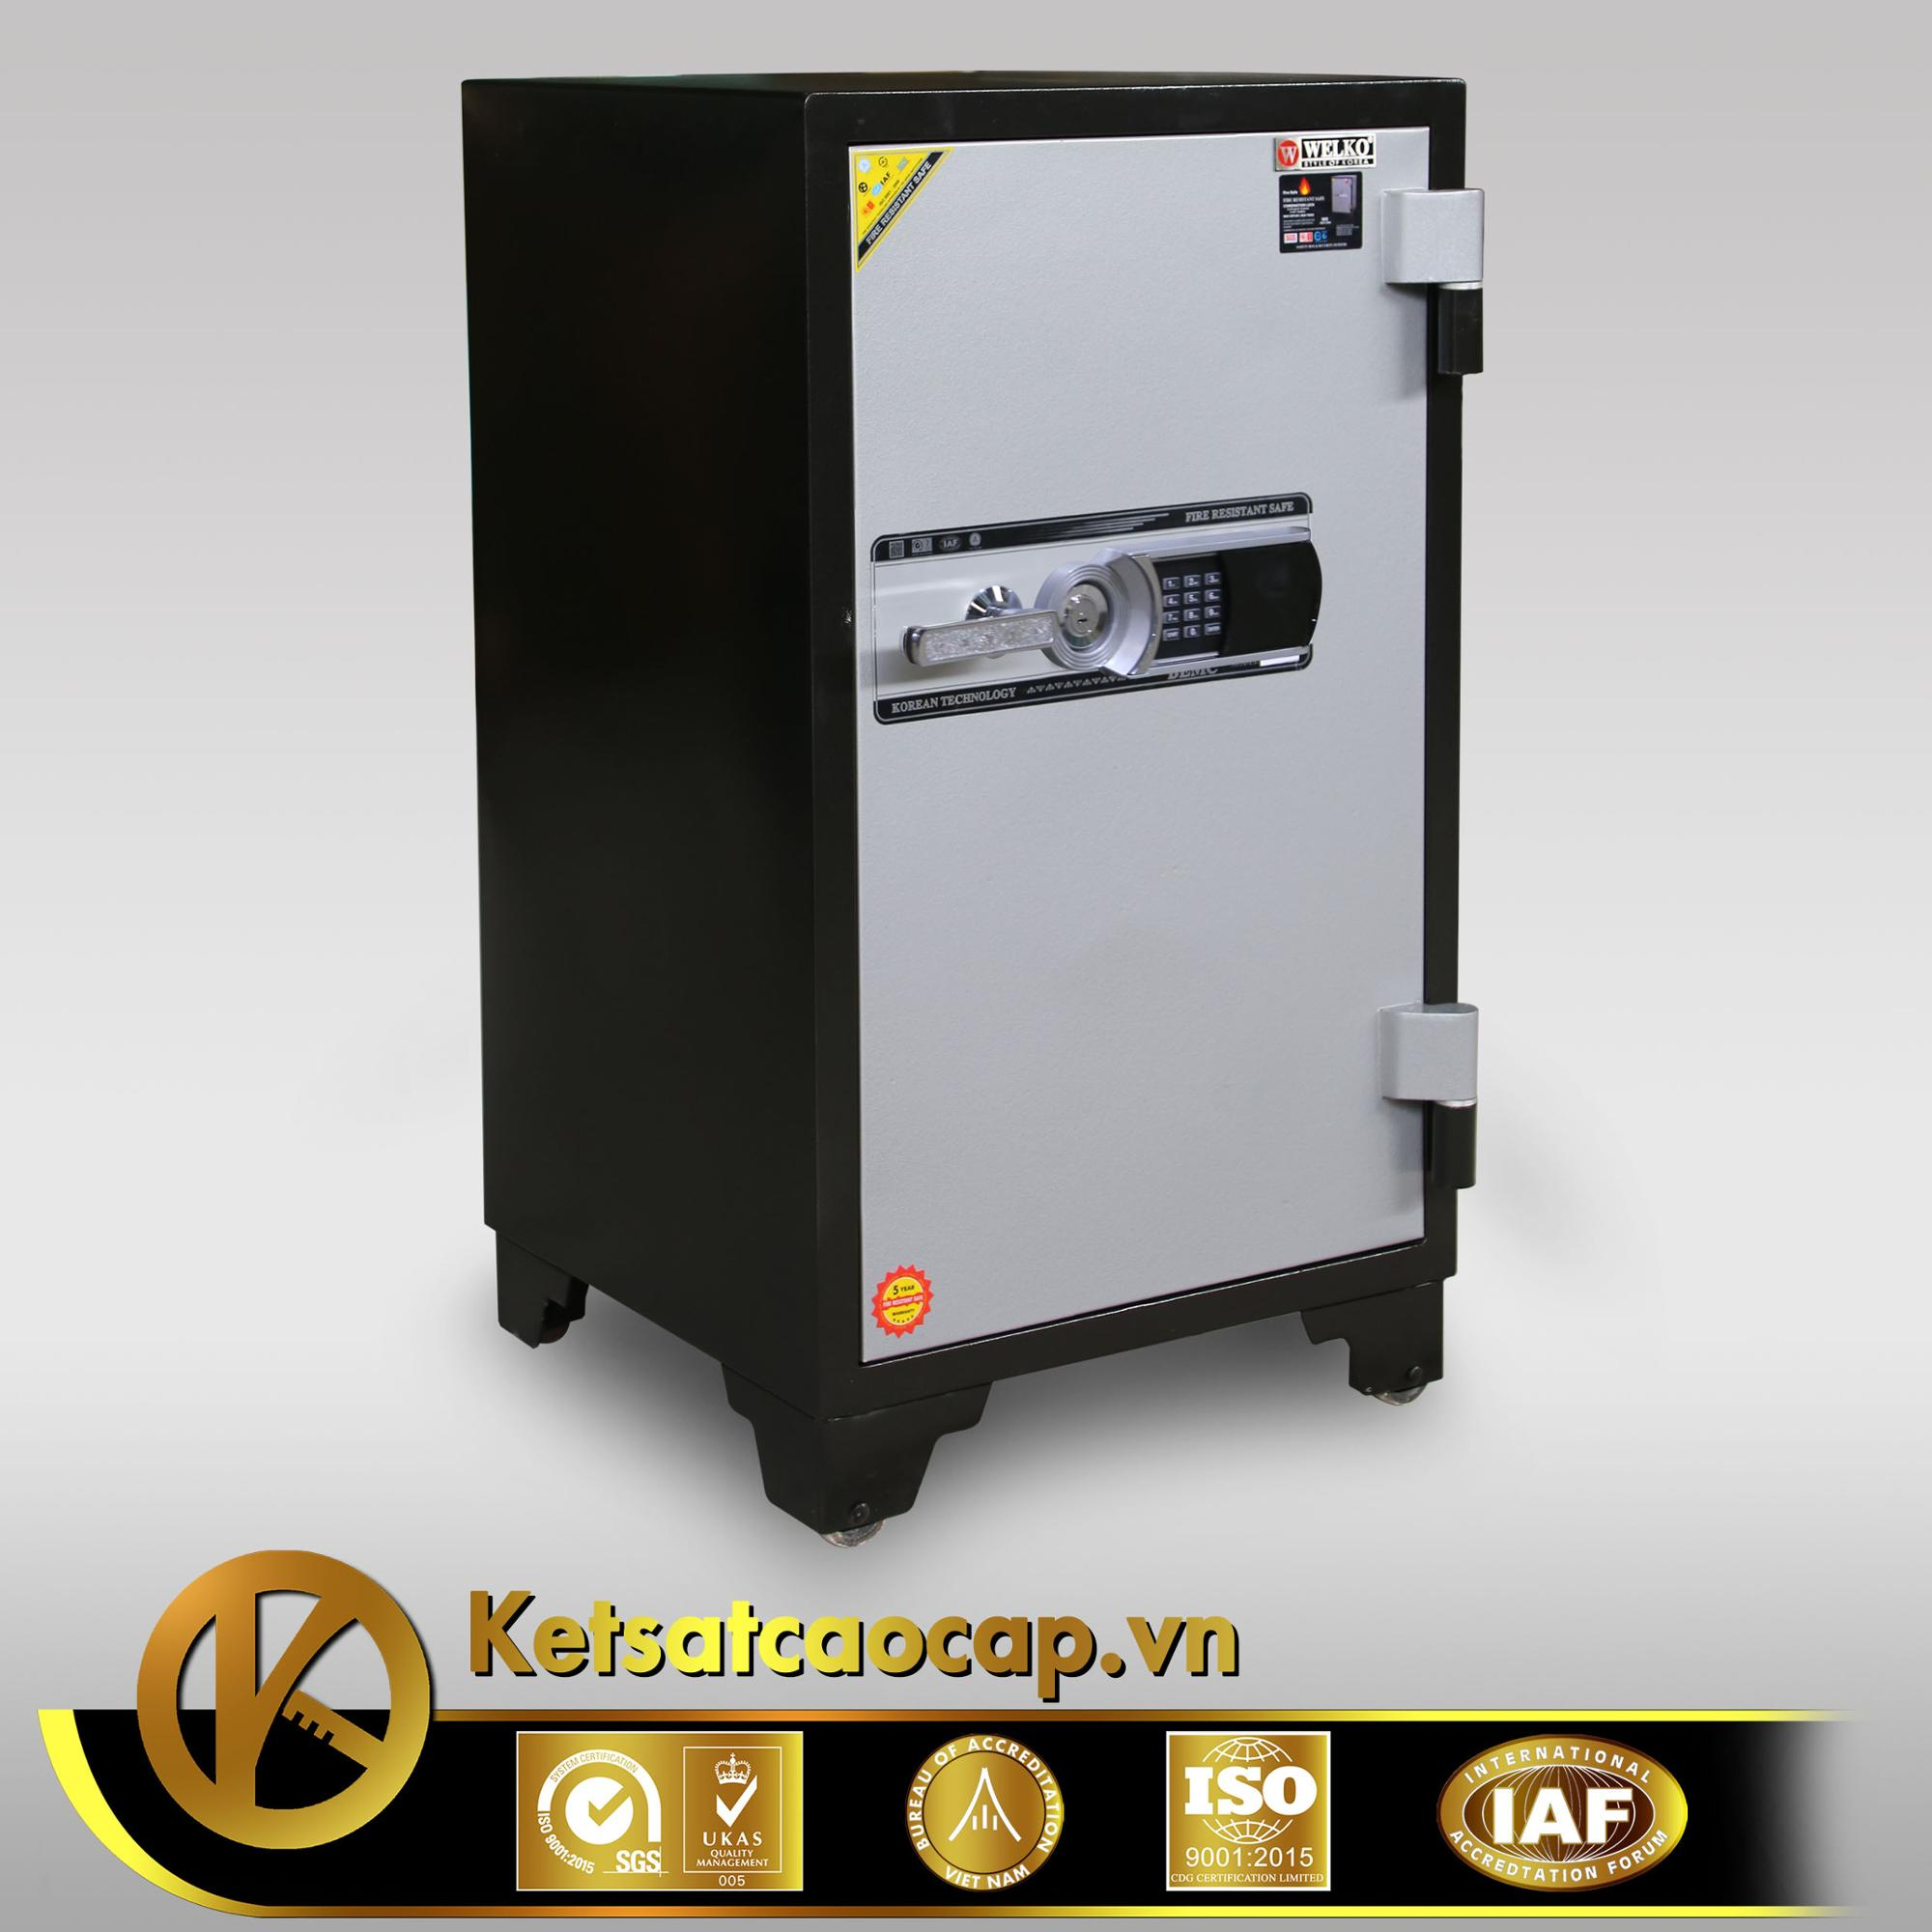 High quality electronic safe 2018 - KS 1070 EK LED